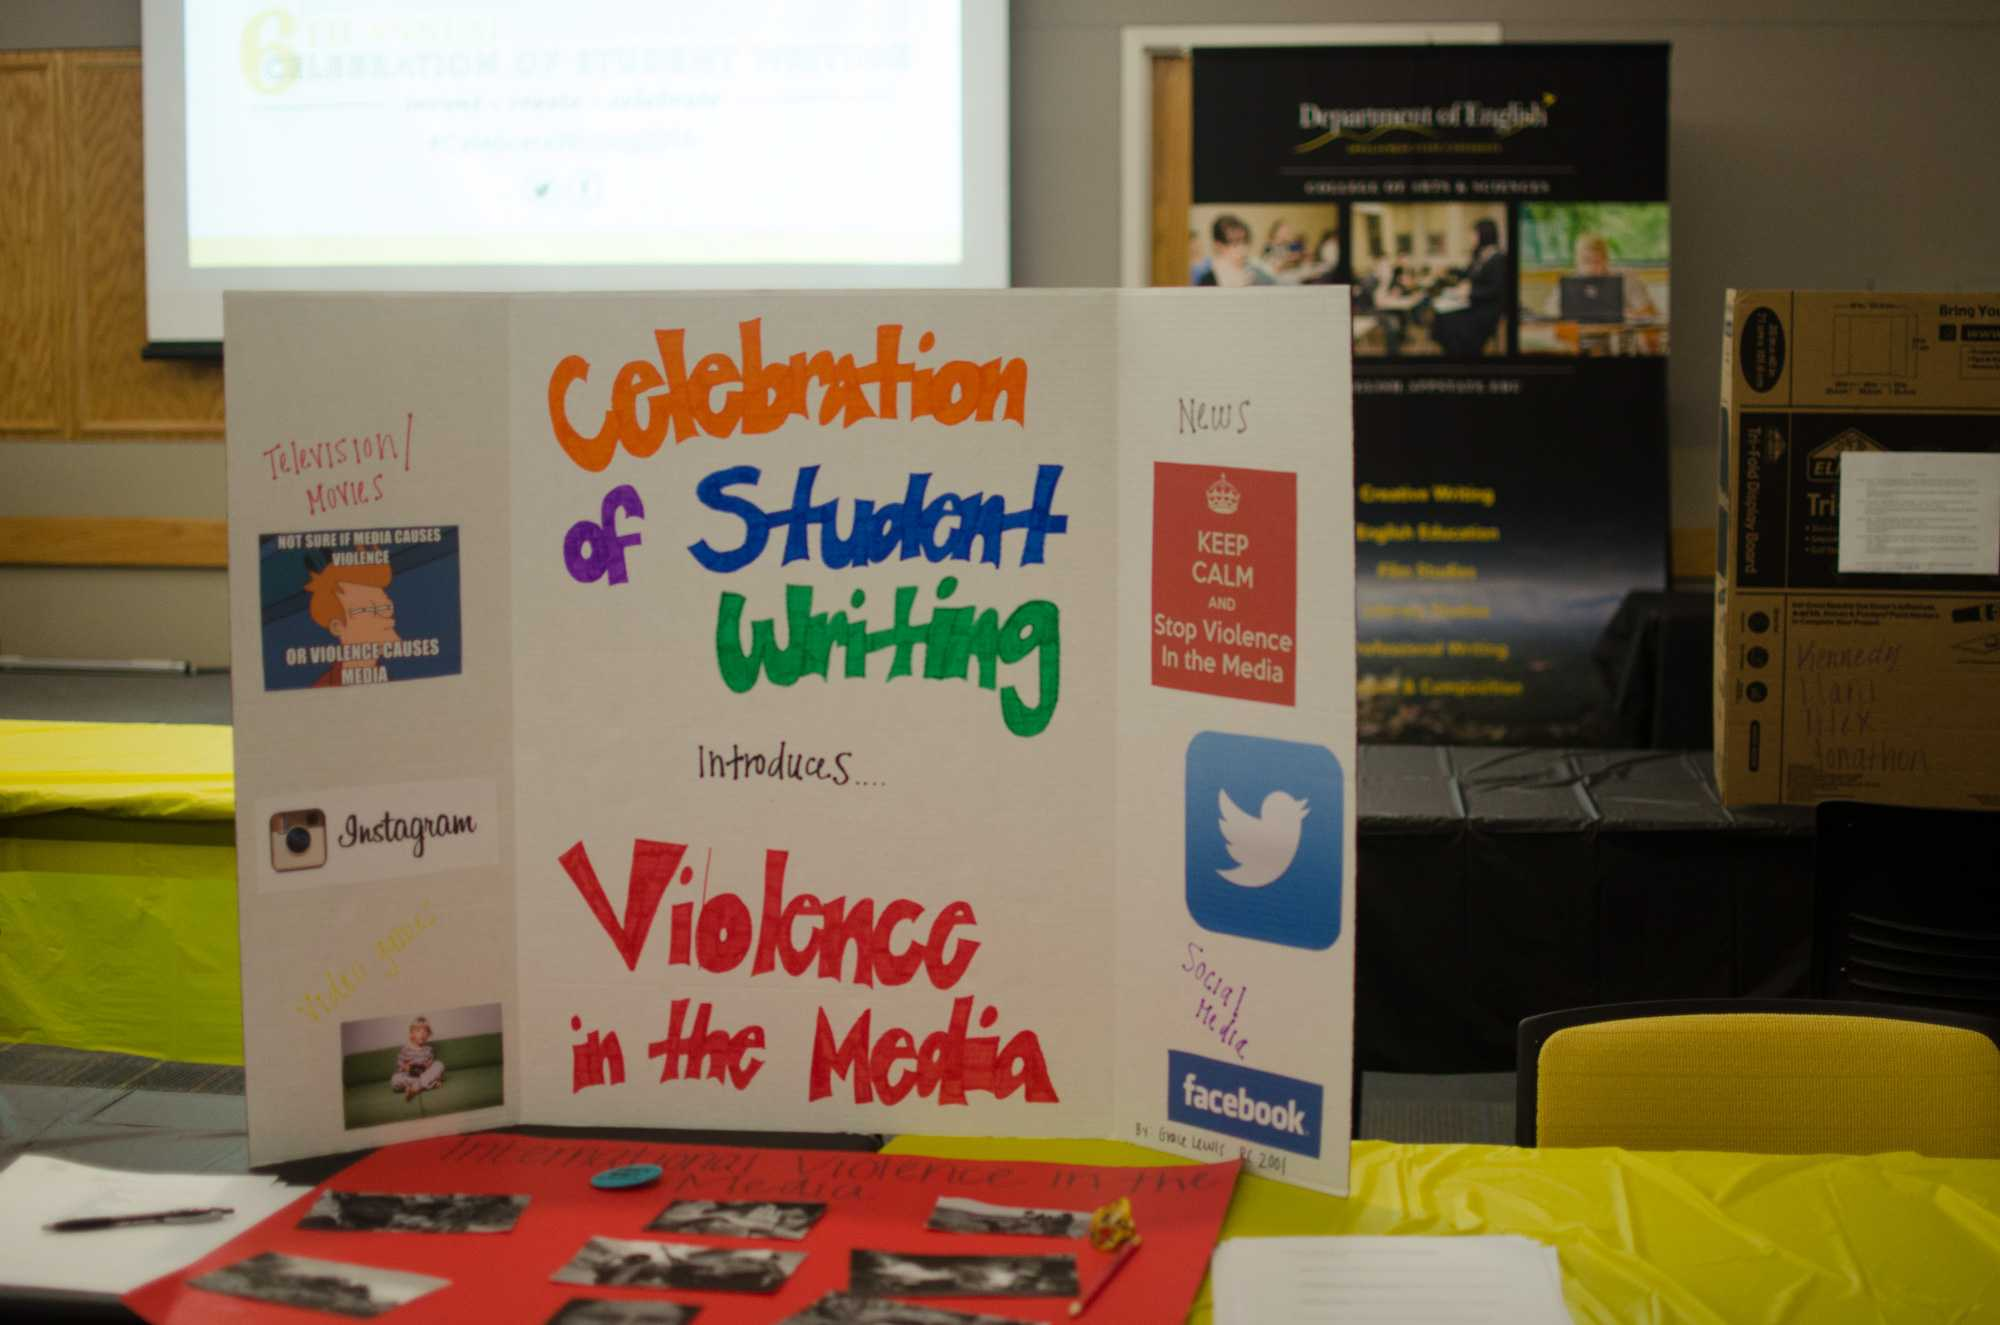 The+Celebration+of+Student+Writng+event+was+on+November+17th.+It+showcased+a+variety+of+projects+written+by+students+who+have+been+working+on+their+topics+all+semester+long.